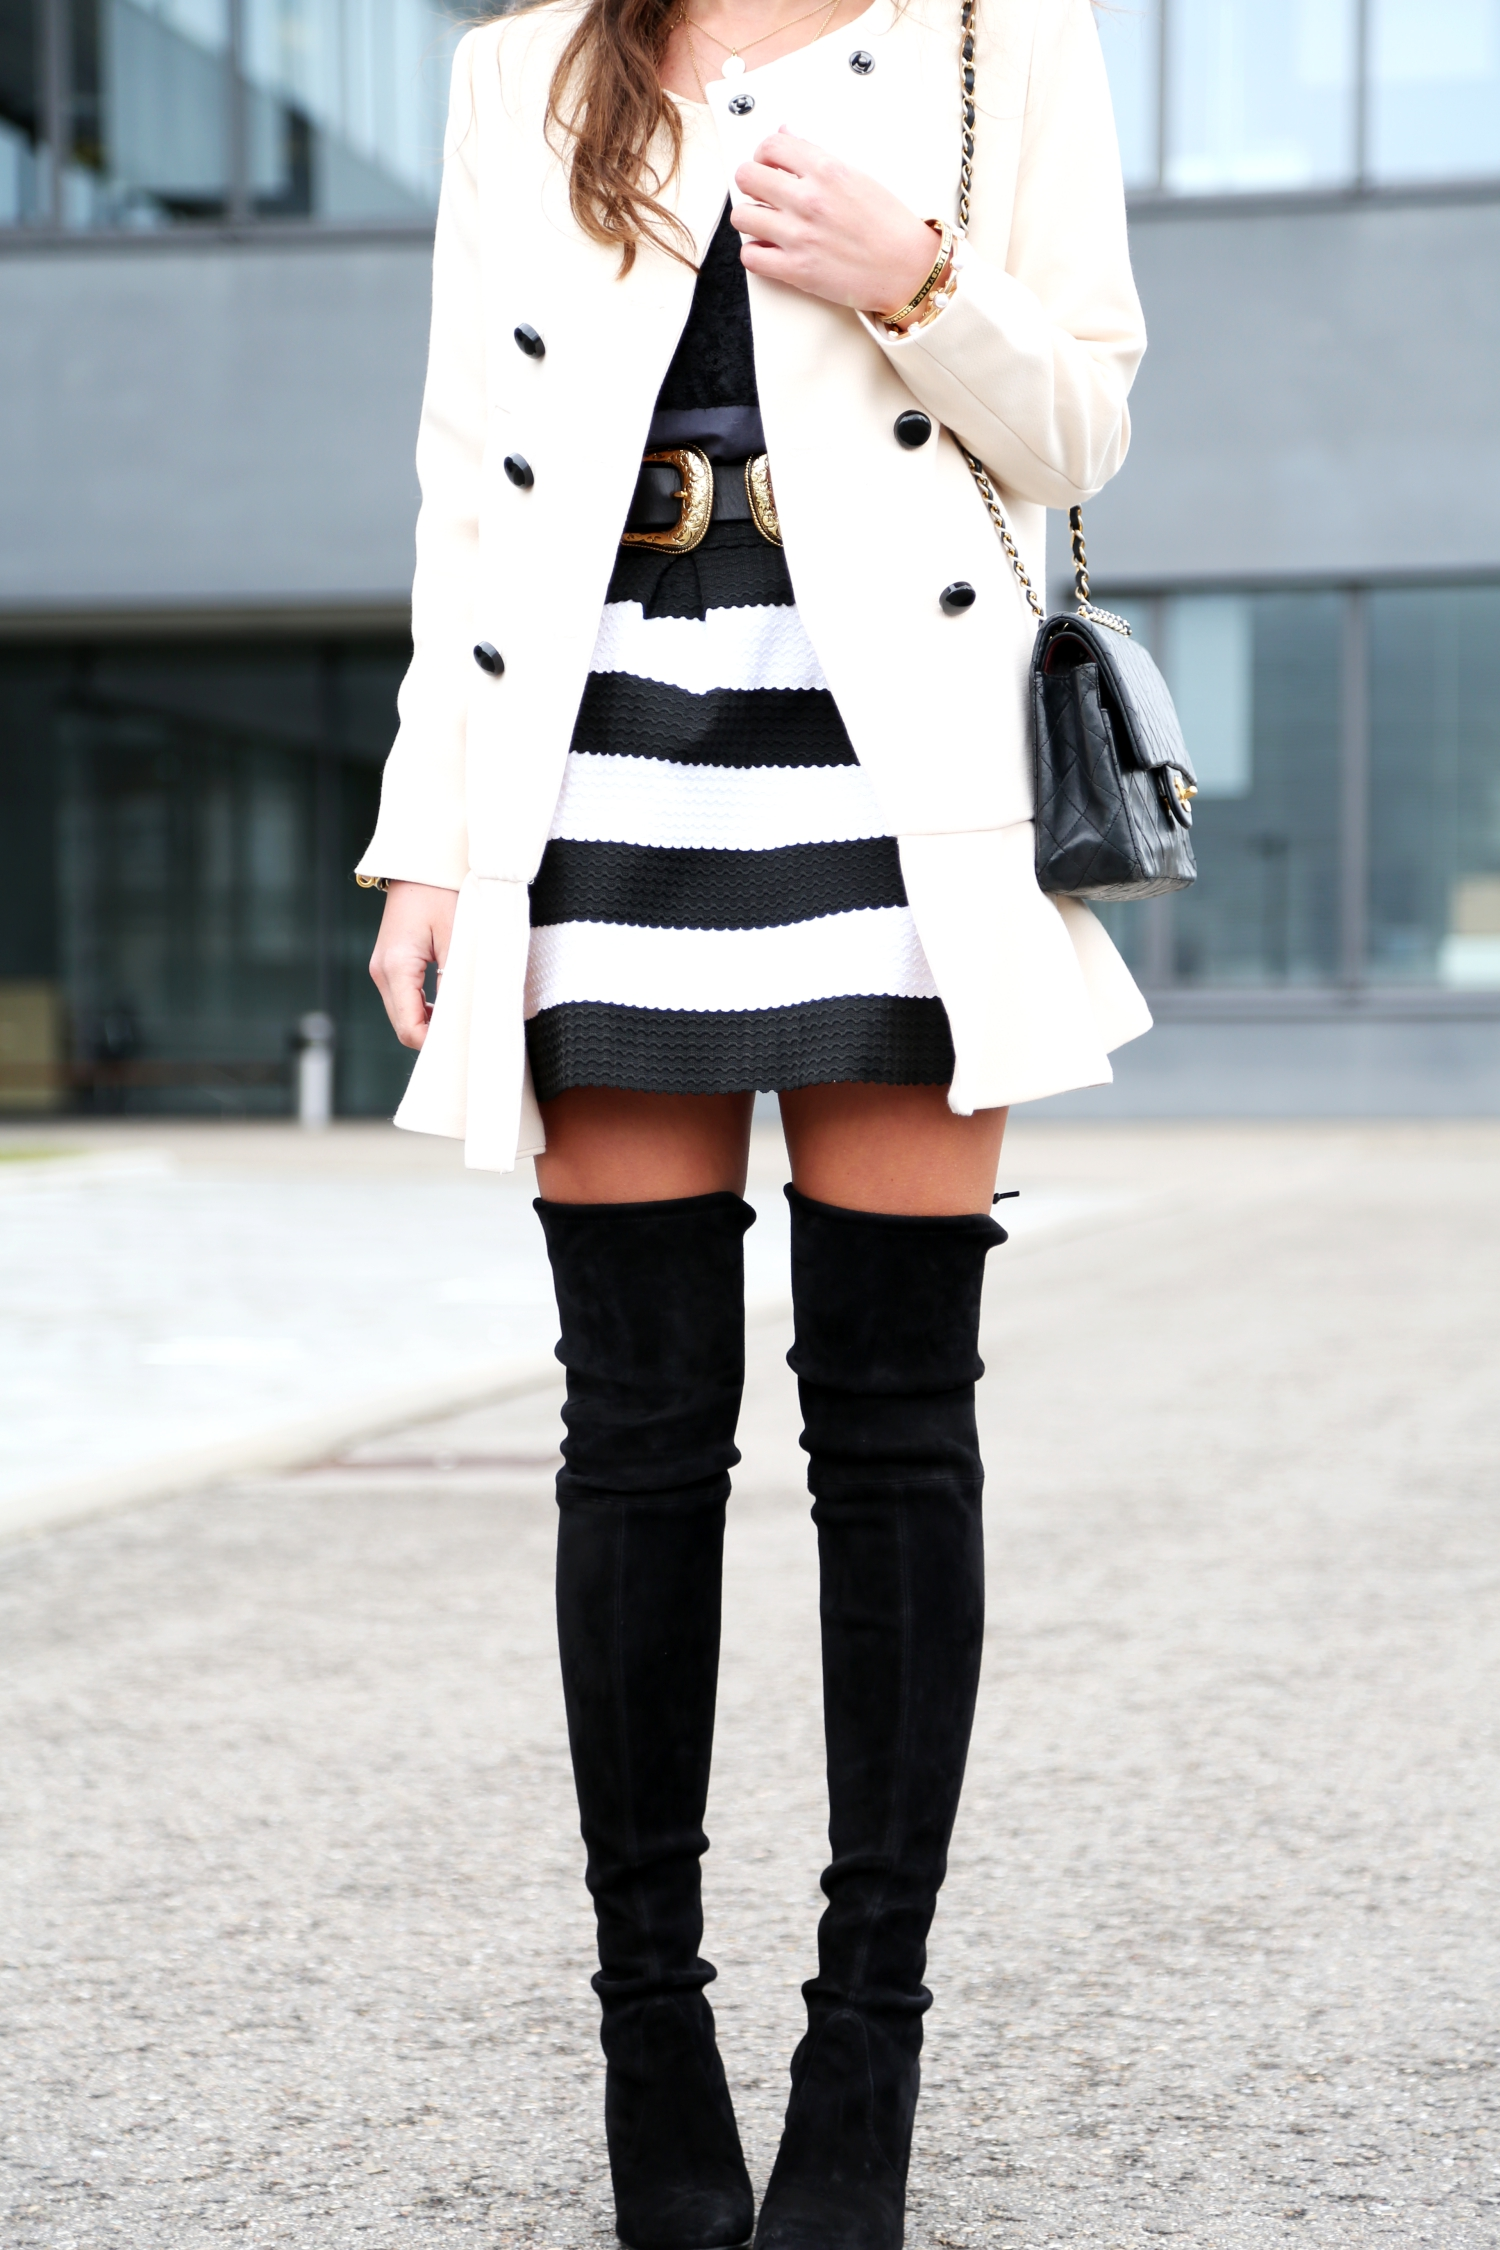 outfit-overknees-coat-skirt-stripes-fashionhippieloves-german-fashionblogger